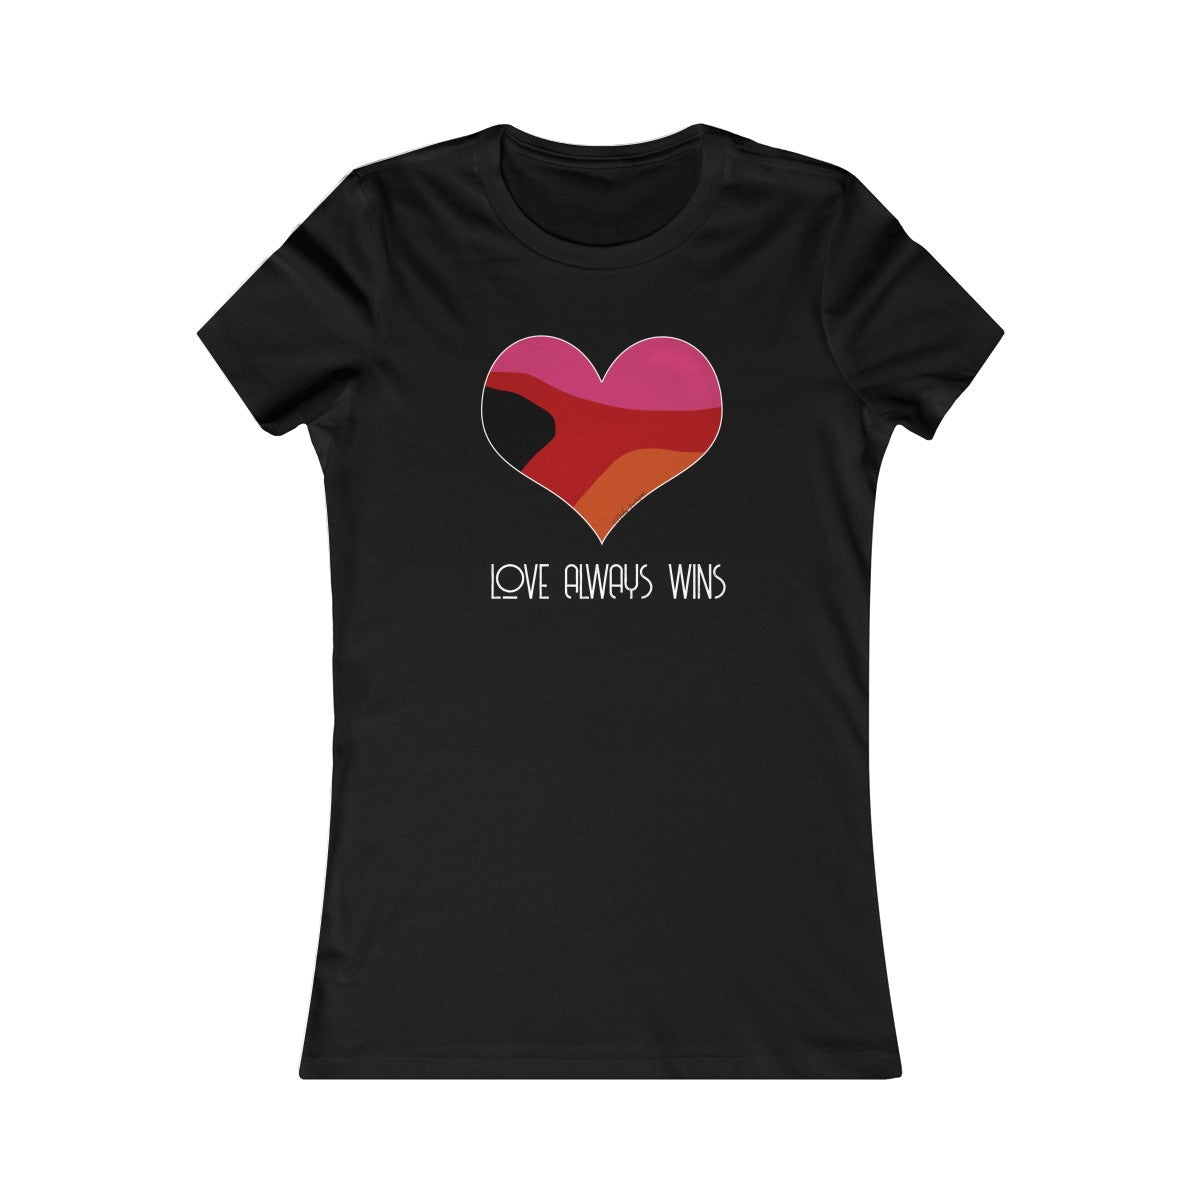 "Valentines Day or EVERYDAY ""LOVE ALWAYS WINS"" -Women's Favorite Tee"